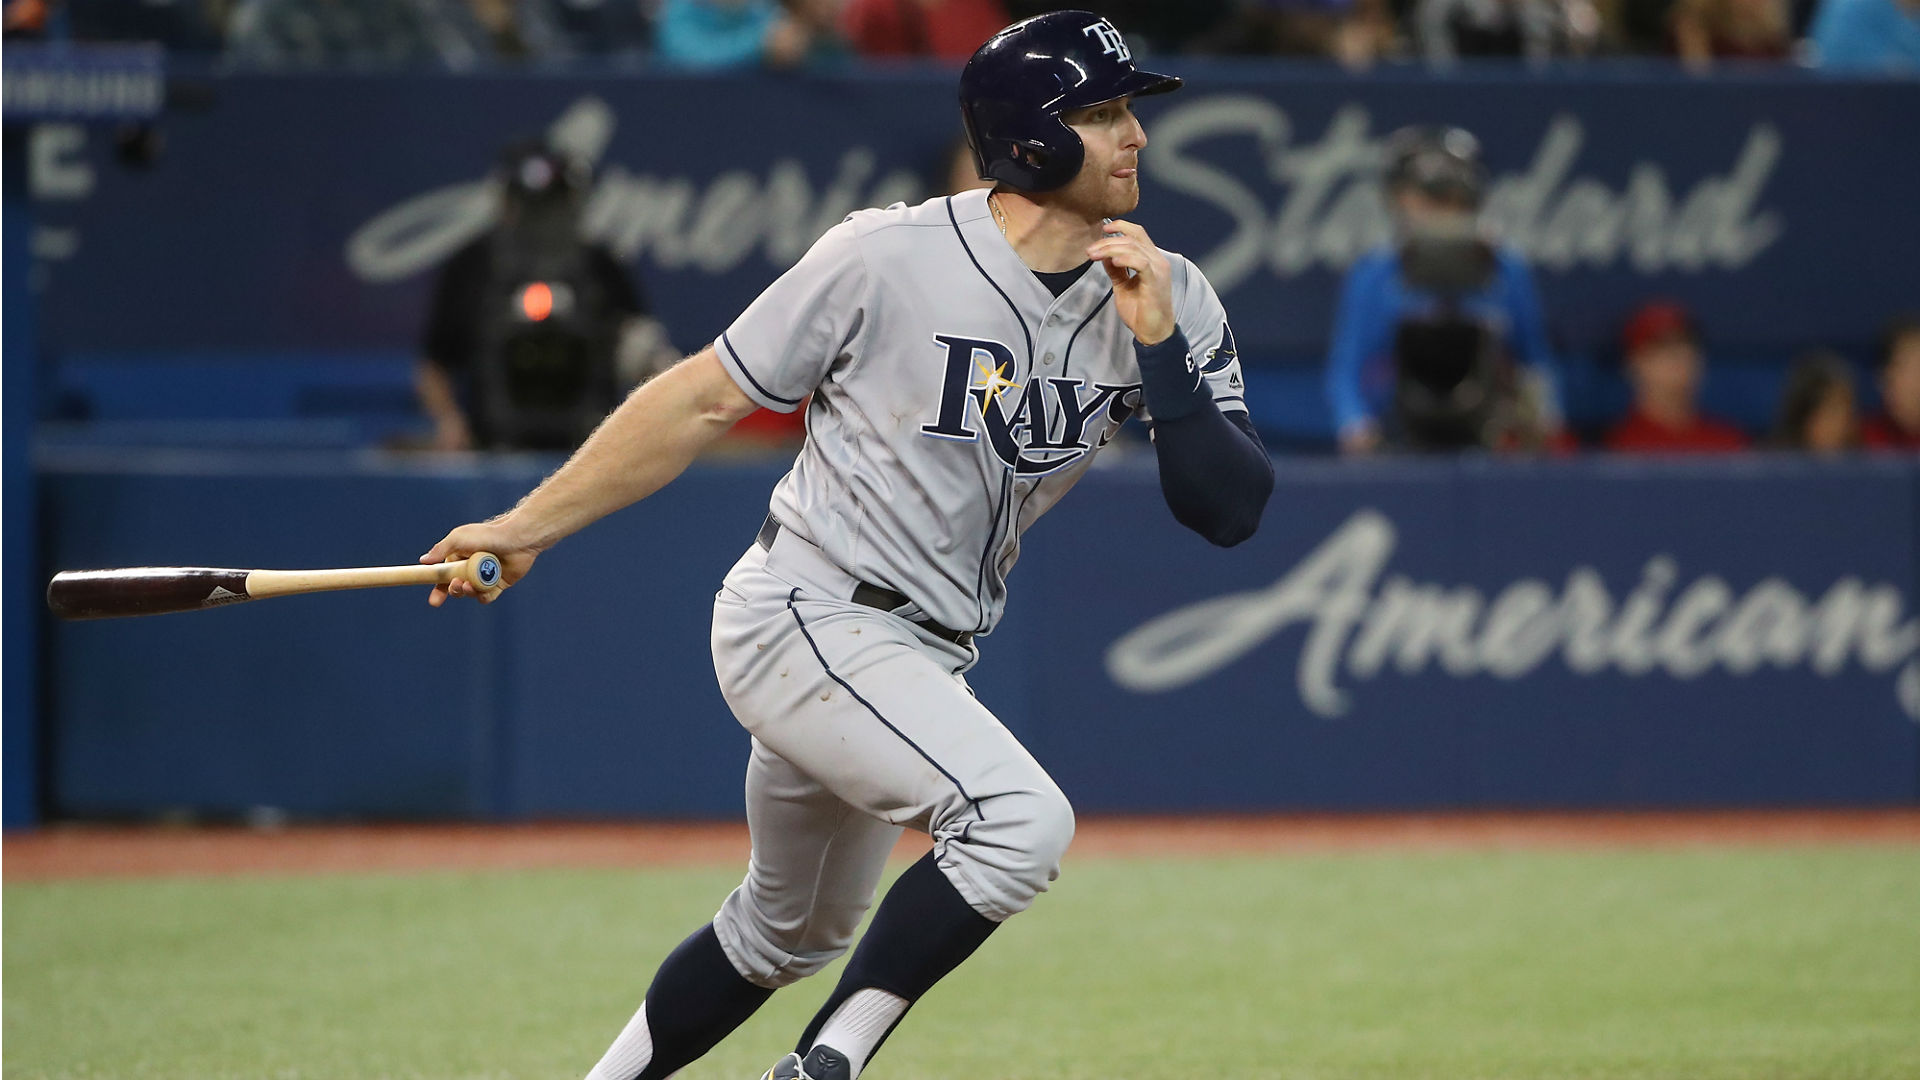 Brewers acquire Brad Miller from Rays for Choi